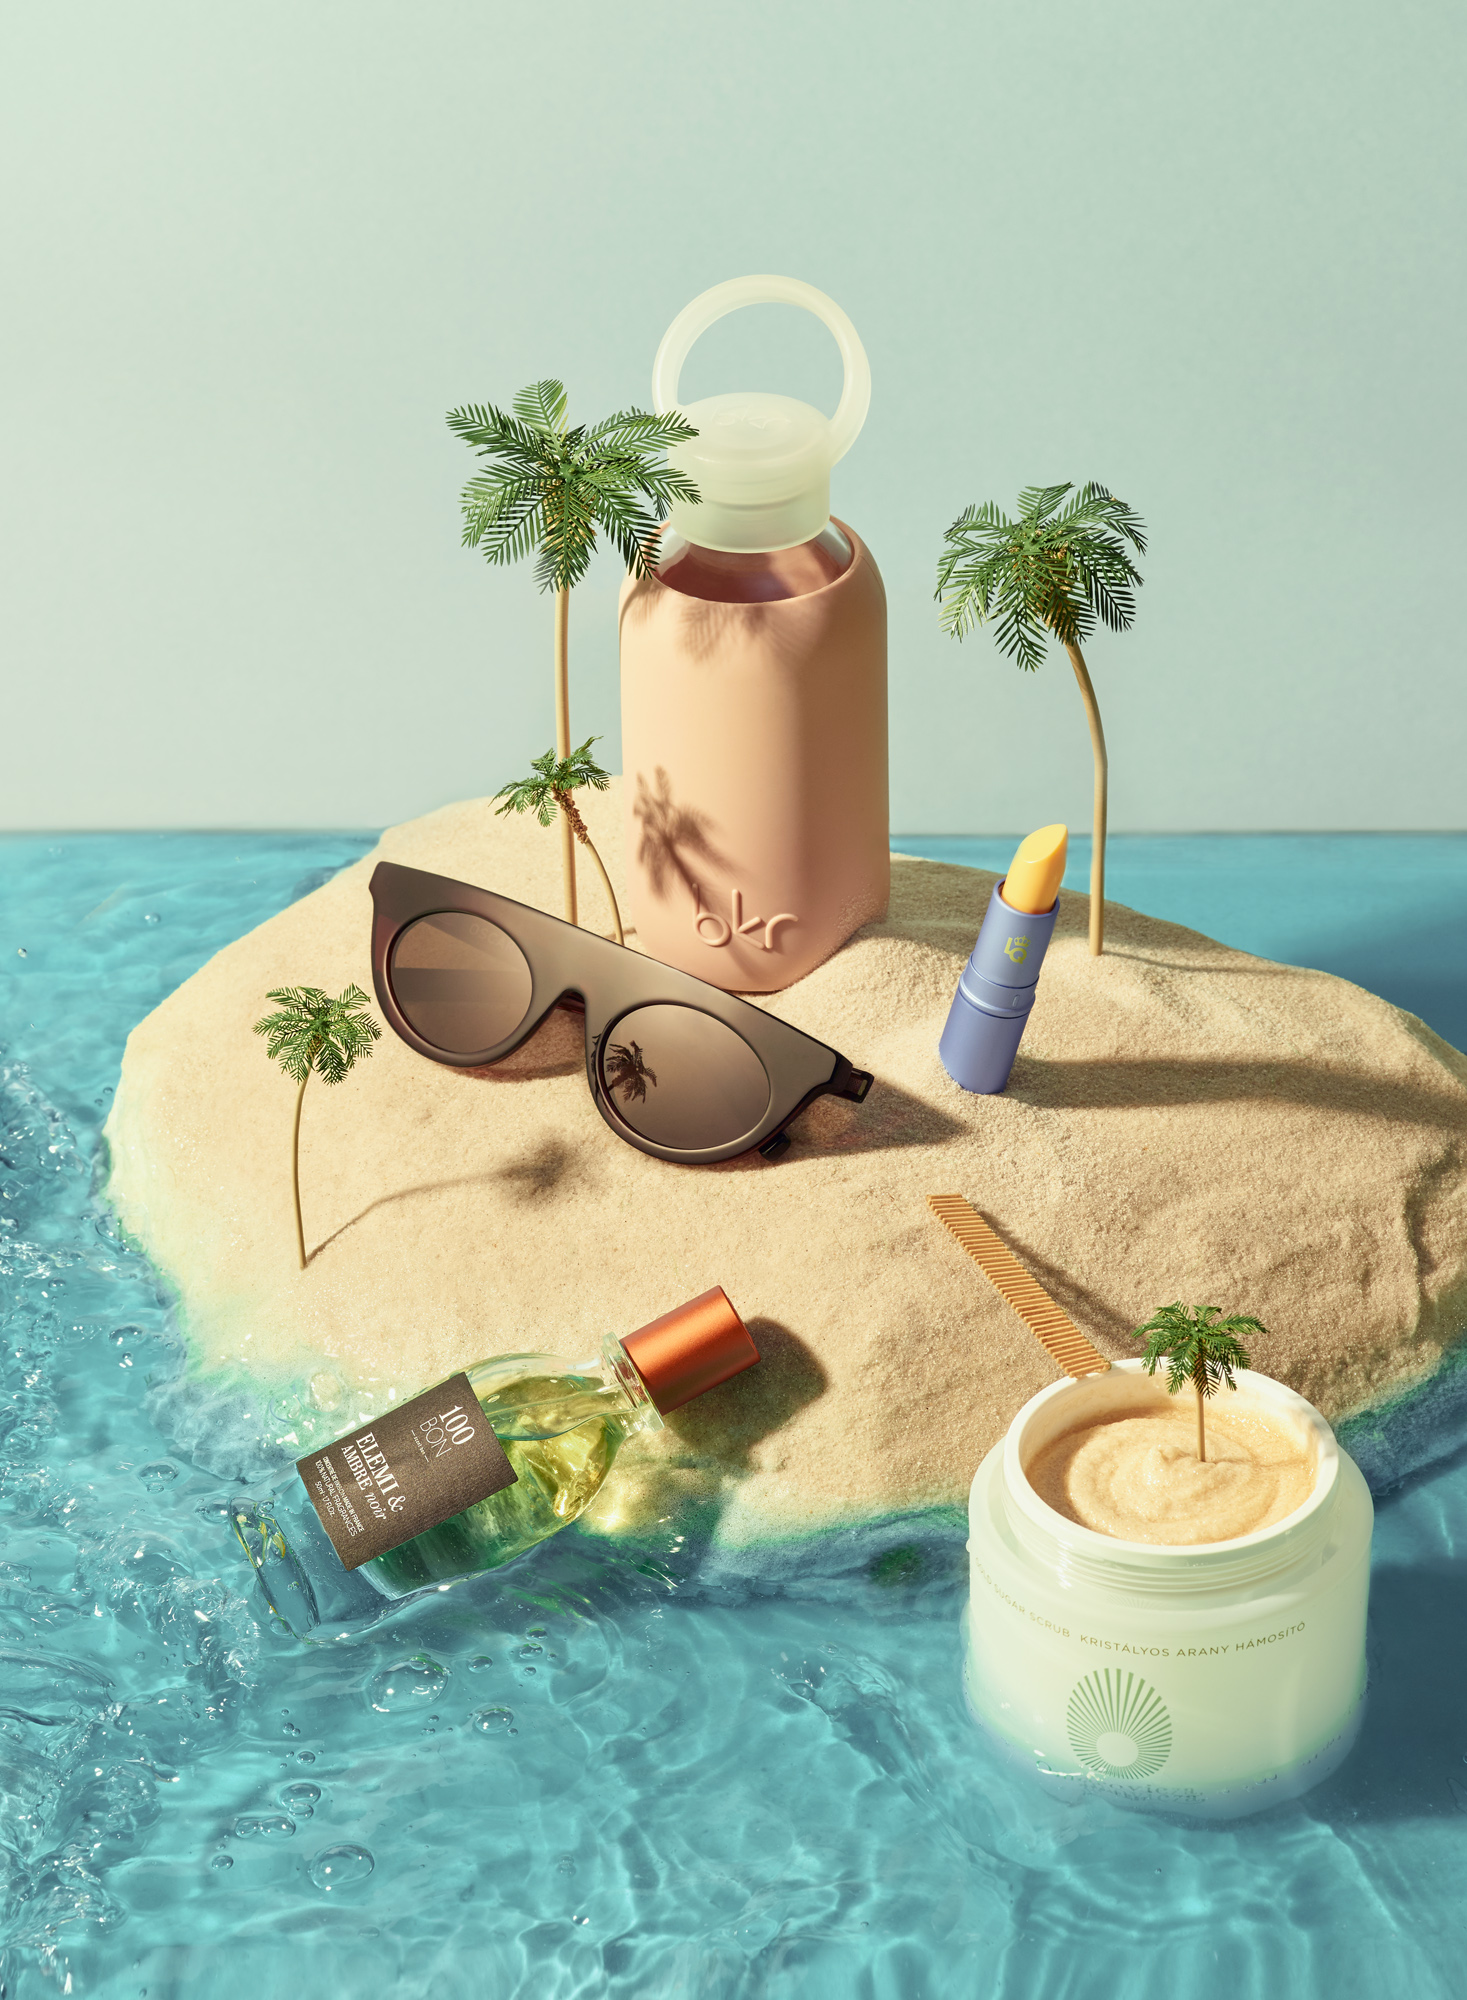 Still life photograph on Island Diorama with sunglasses, bottle, cream, lipstick and perfume